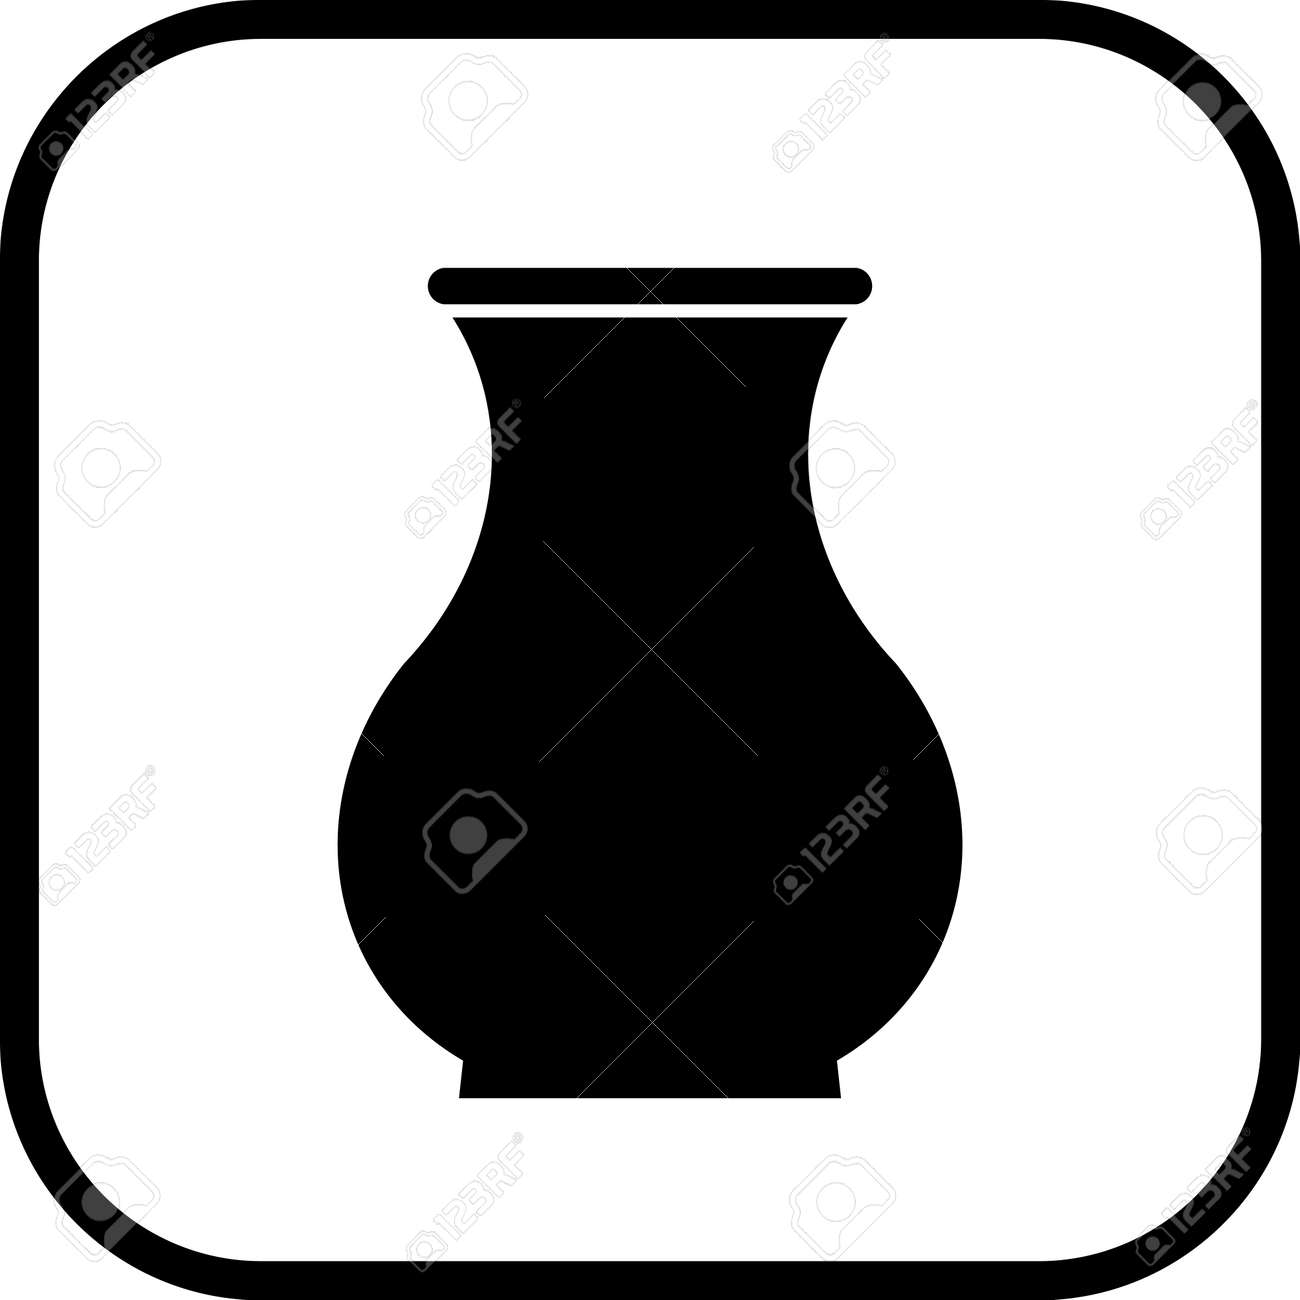 Ceramic Pot Crock Vase Vector Simple Icon Isolated Royalty Free ...